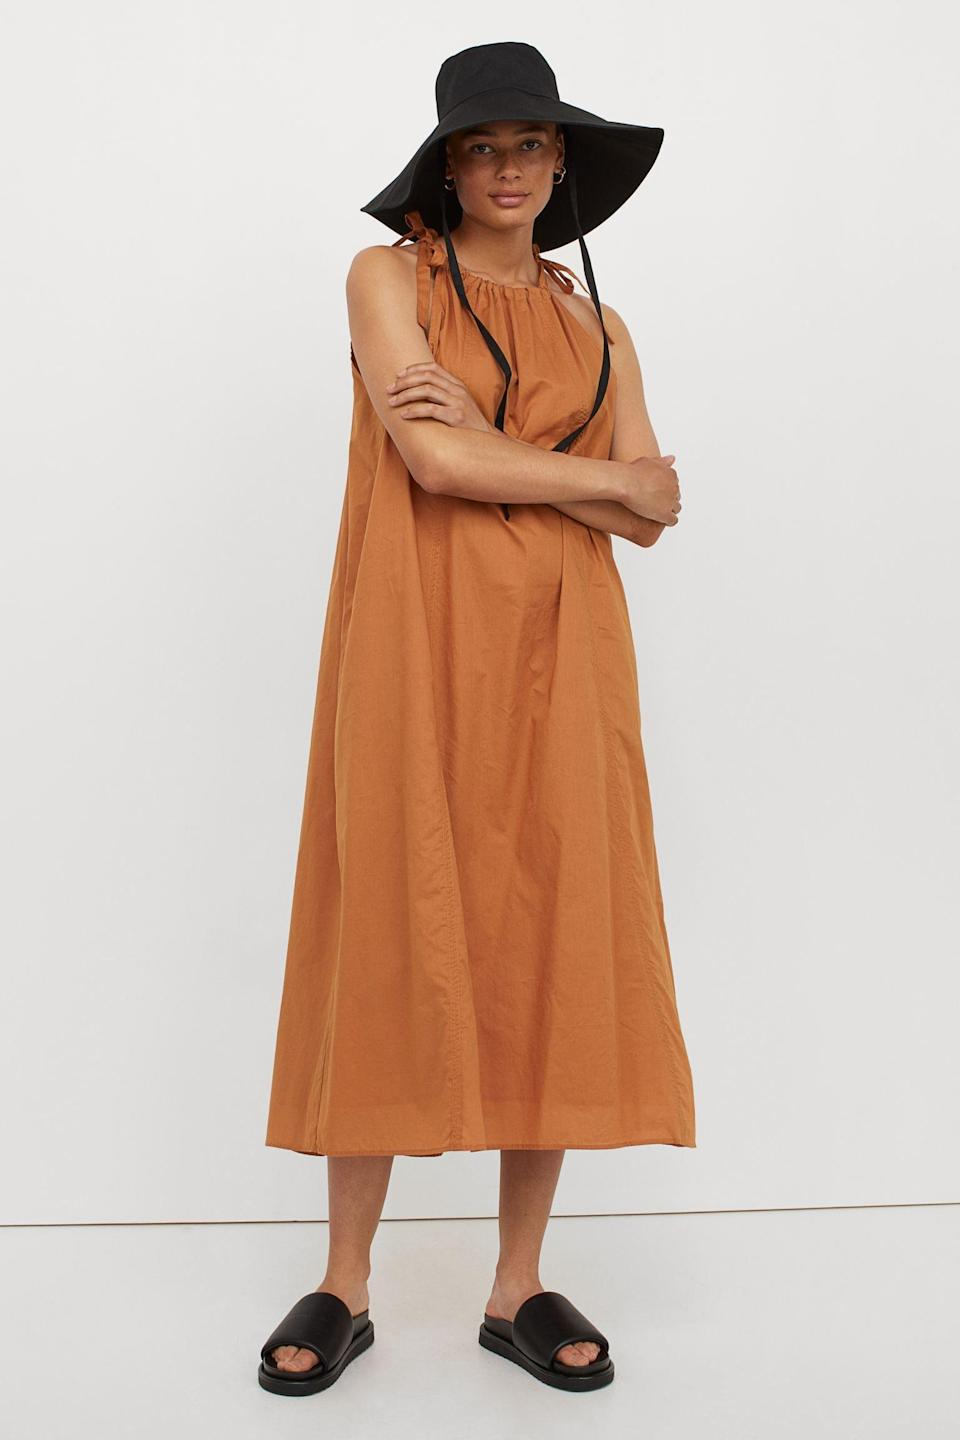 <p>Give your beach wardrobe a stylish upgrade with this loose-fitting, yet extremely put-together, <span>Flared Dress</span> ($36, originally $40). Finish off your look with a large bucket hat and some thick slide sandals.</p>